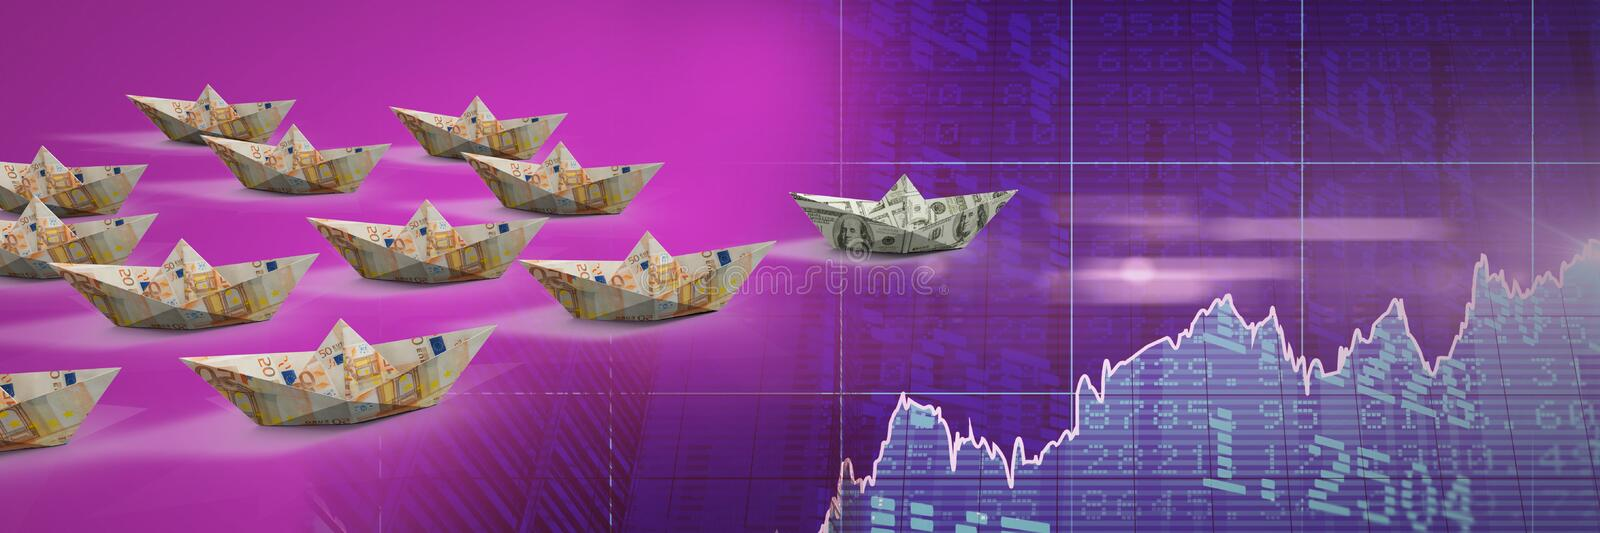 Group of Paper boats on economic statistic charts vector illustration